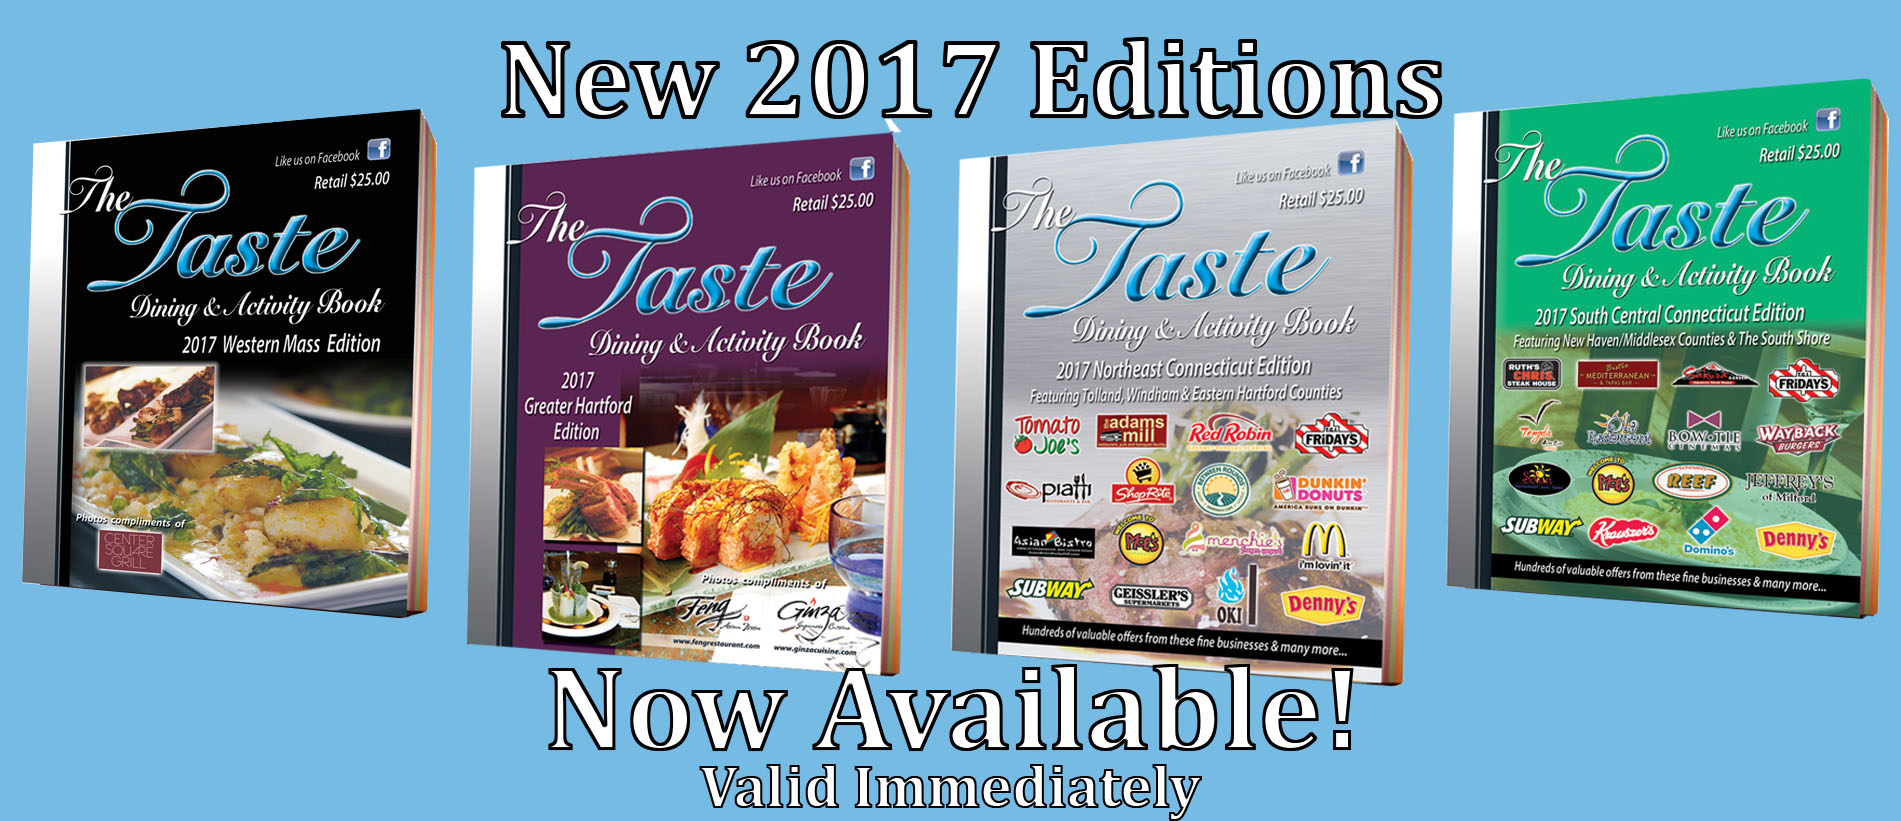 2017 Homepage books now available LR